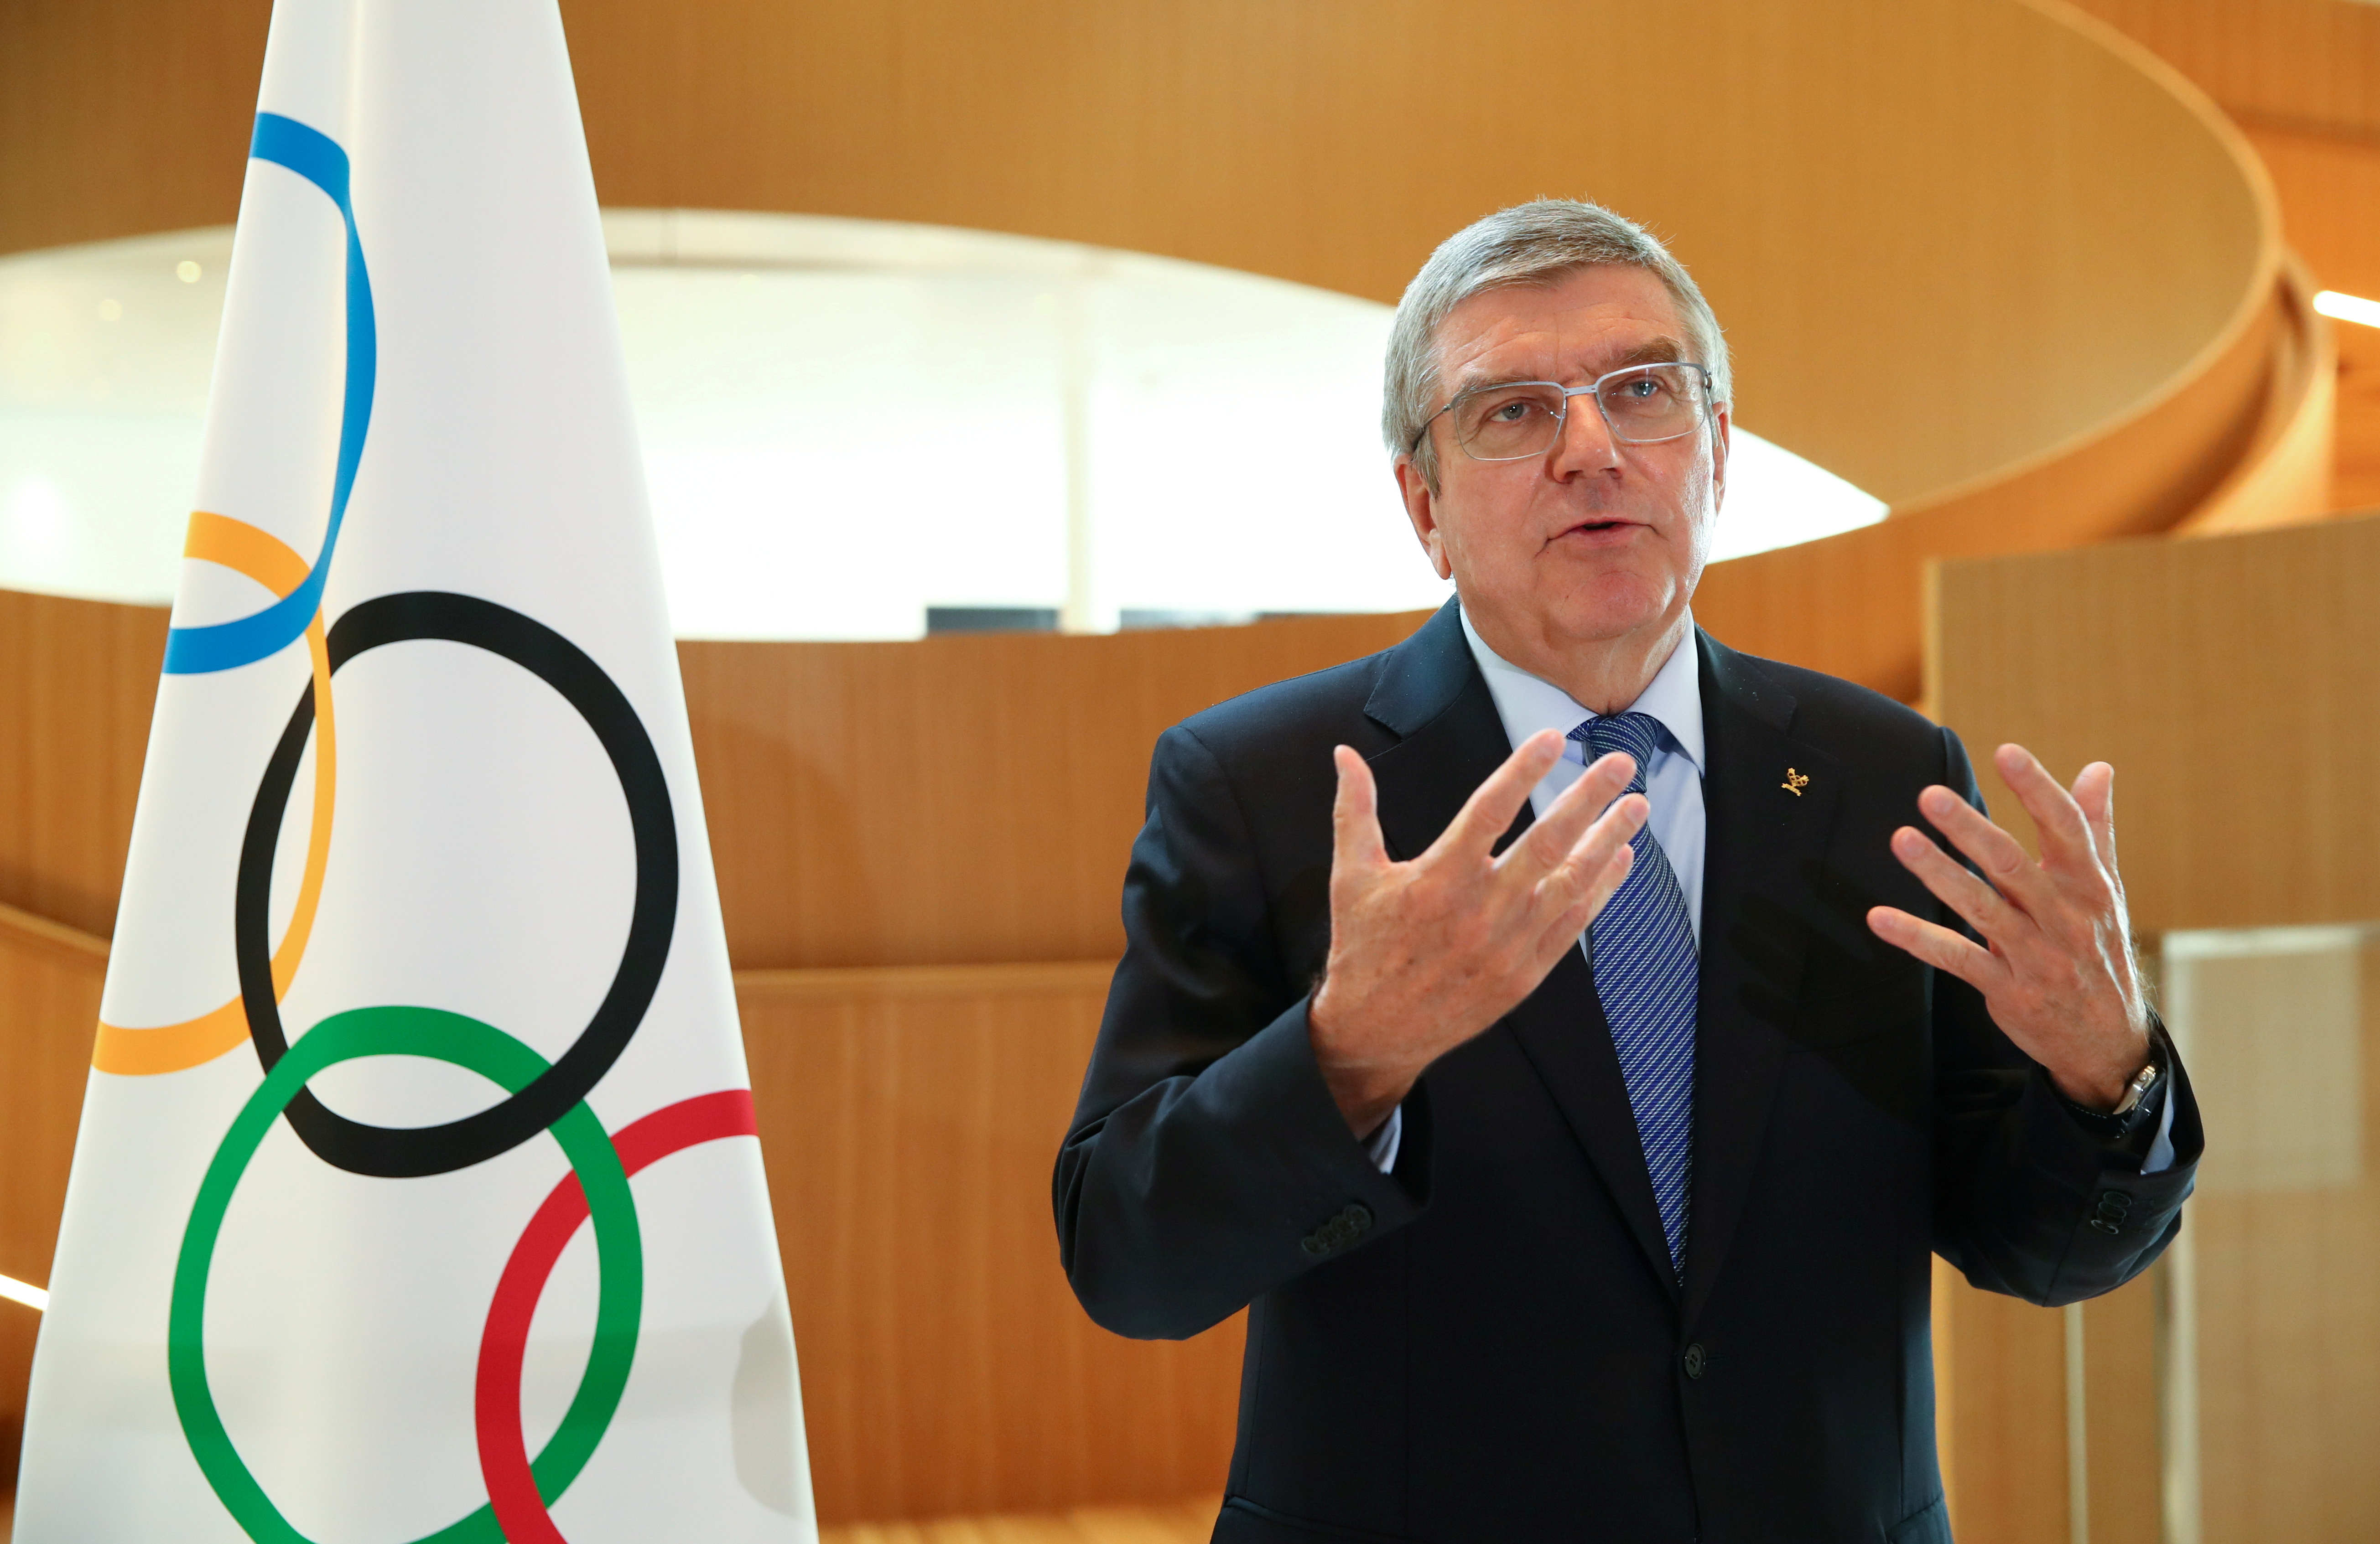 Thomas Bach, President of the International Olympic Committee (IOC) attends an interview in Lausanne, Switzerland, March 25, 2020. REUTERS/Denis Balibouse